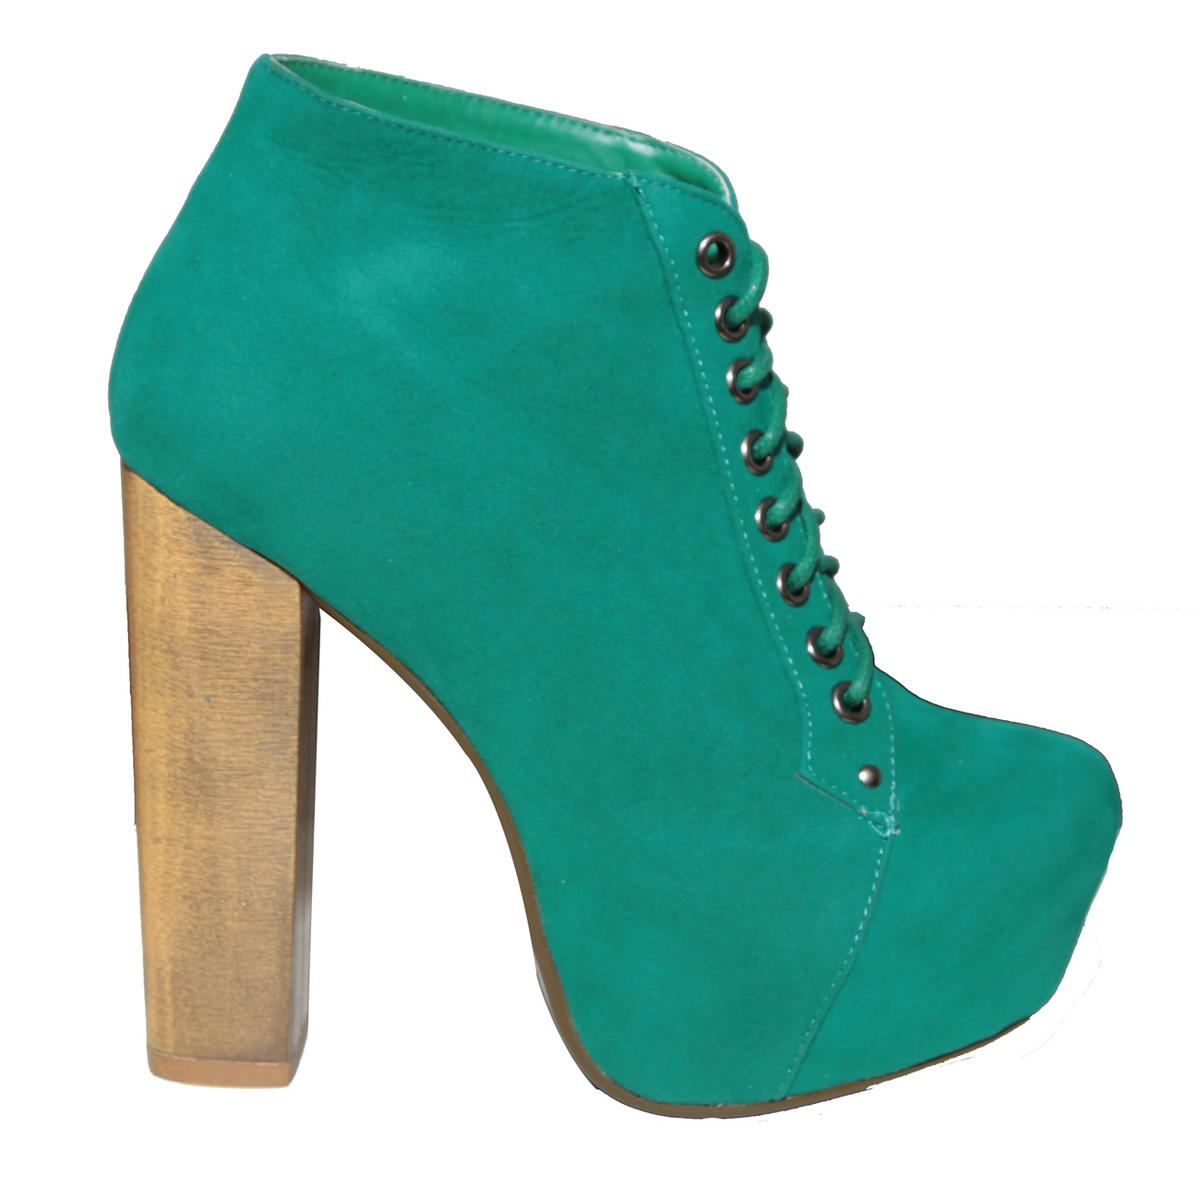 Green Suede Lace Up Ankle Boot  Preview